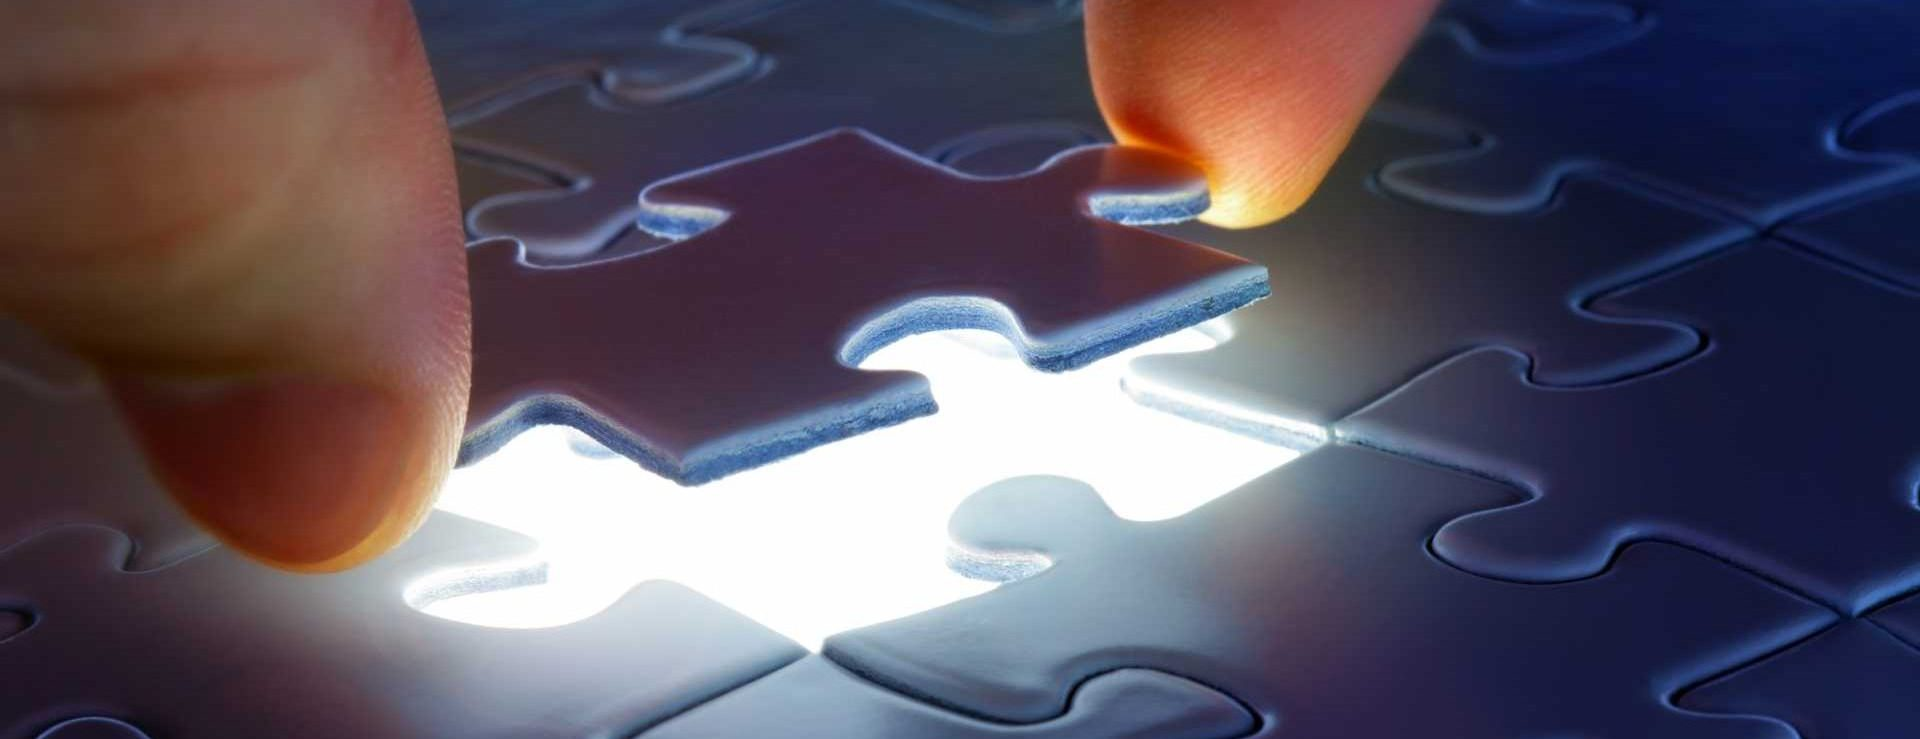 Production Planning Business Strategy Objective Puzzle Piece - image courtesy of Depositphotos.